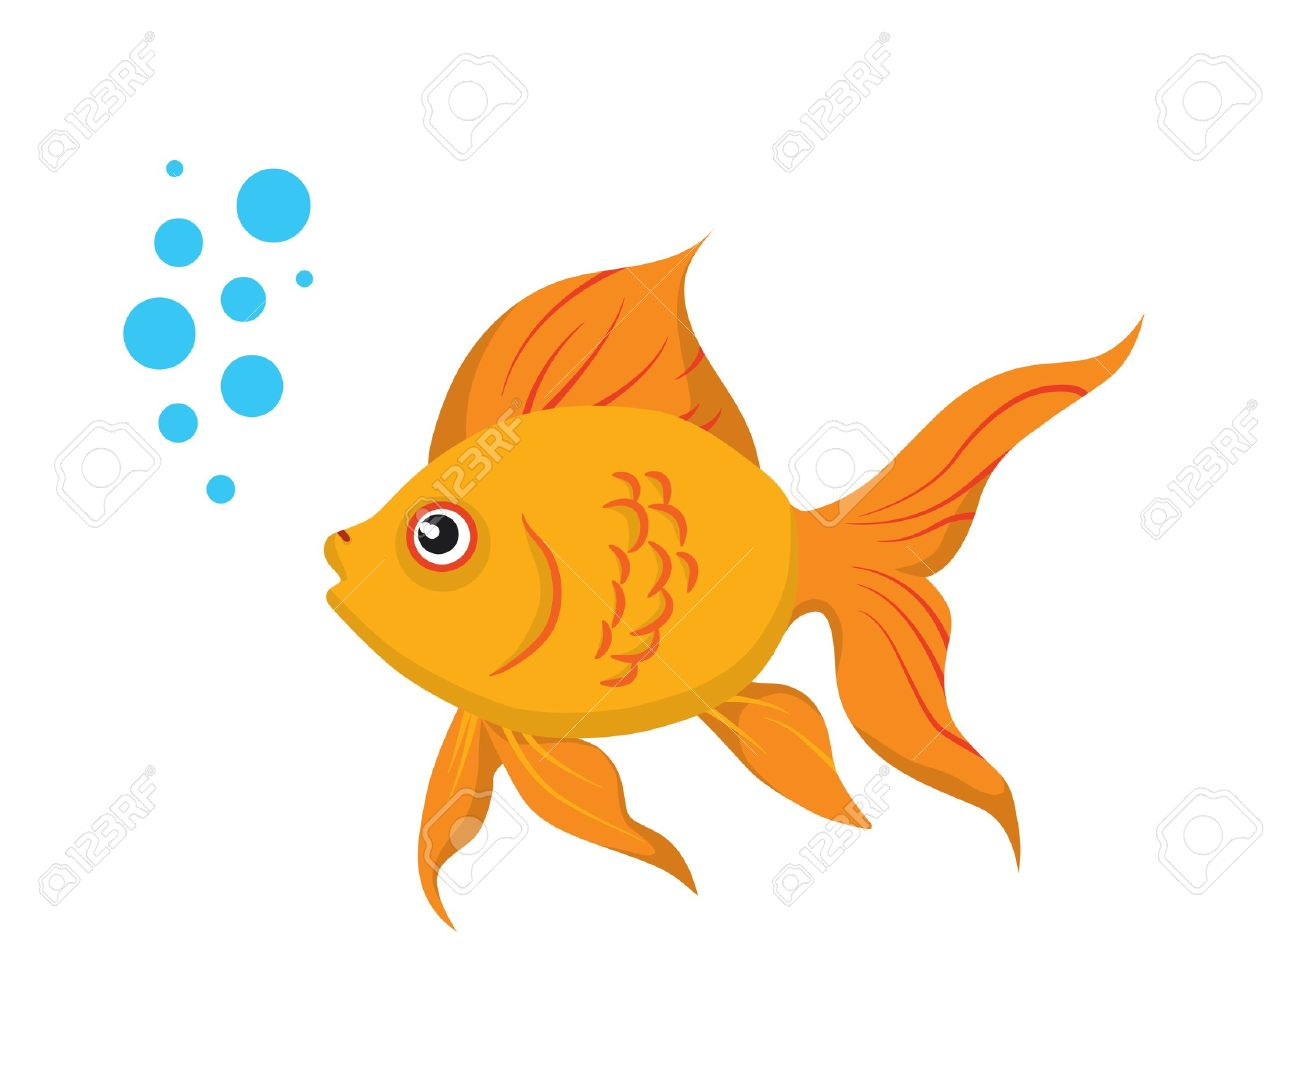 Goldfish clipart clipart panda free clipart images for Goldfish en estanque